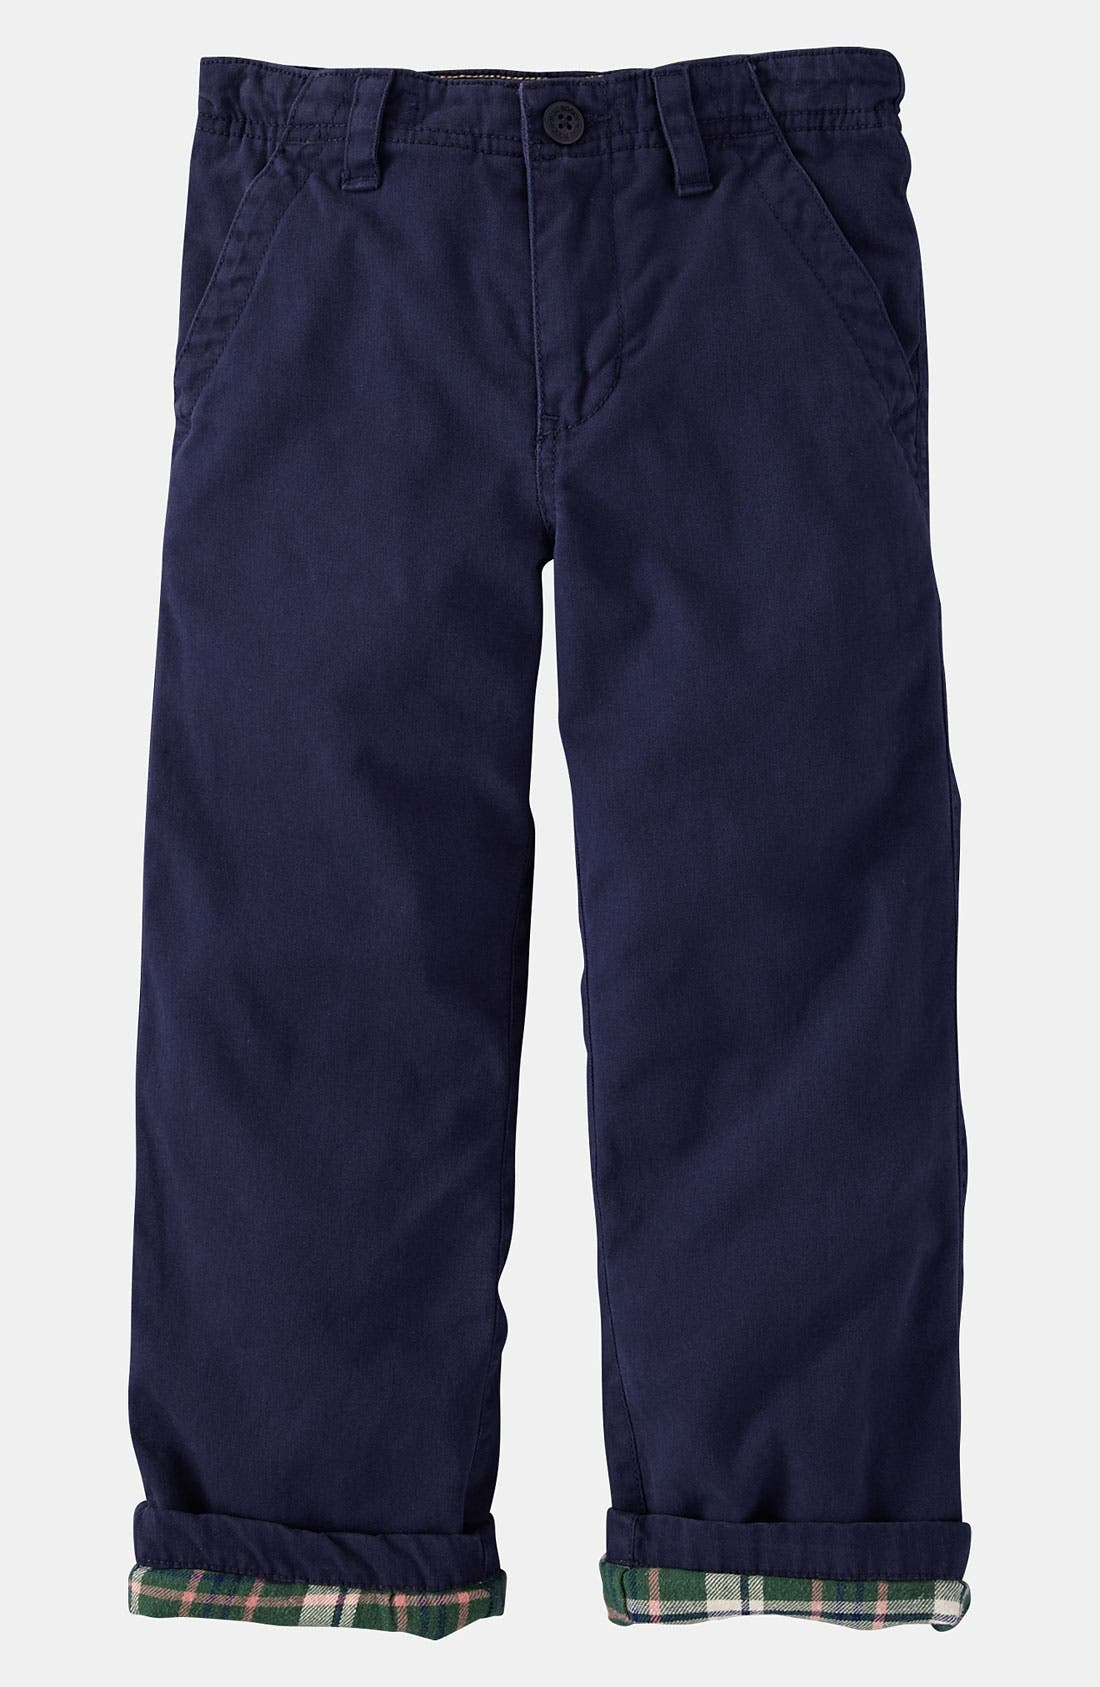 Alternate Image 1 Selected - Mini Boden Lined Chinos (Toddler)